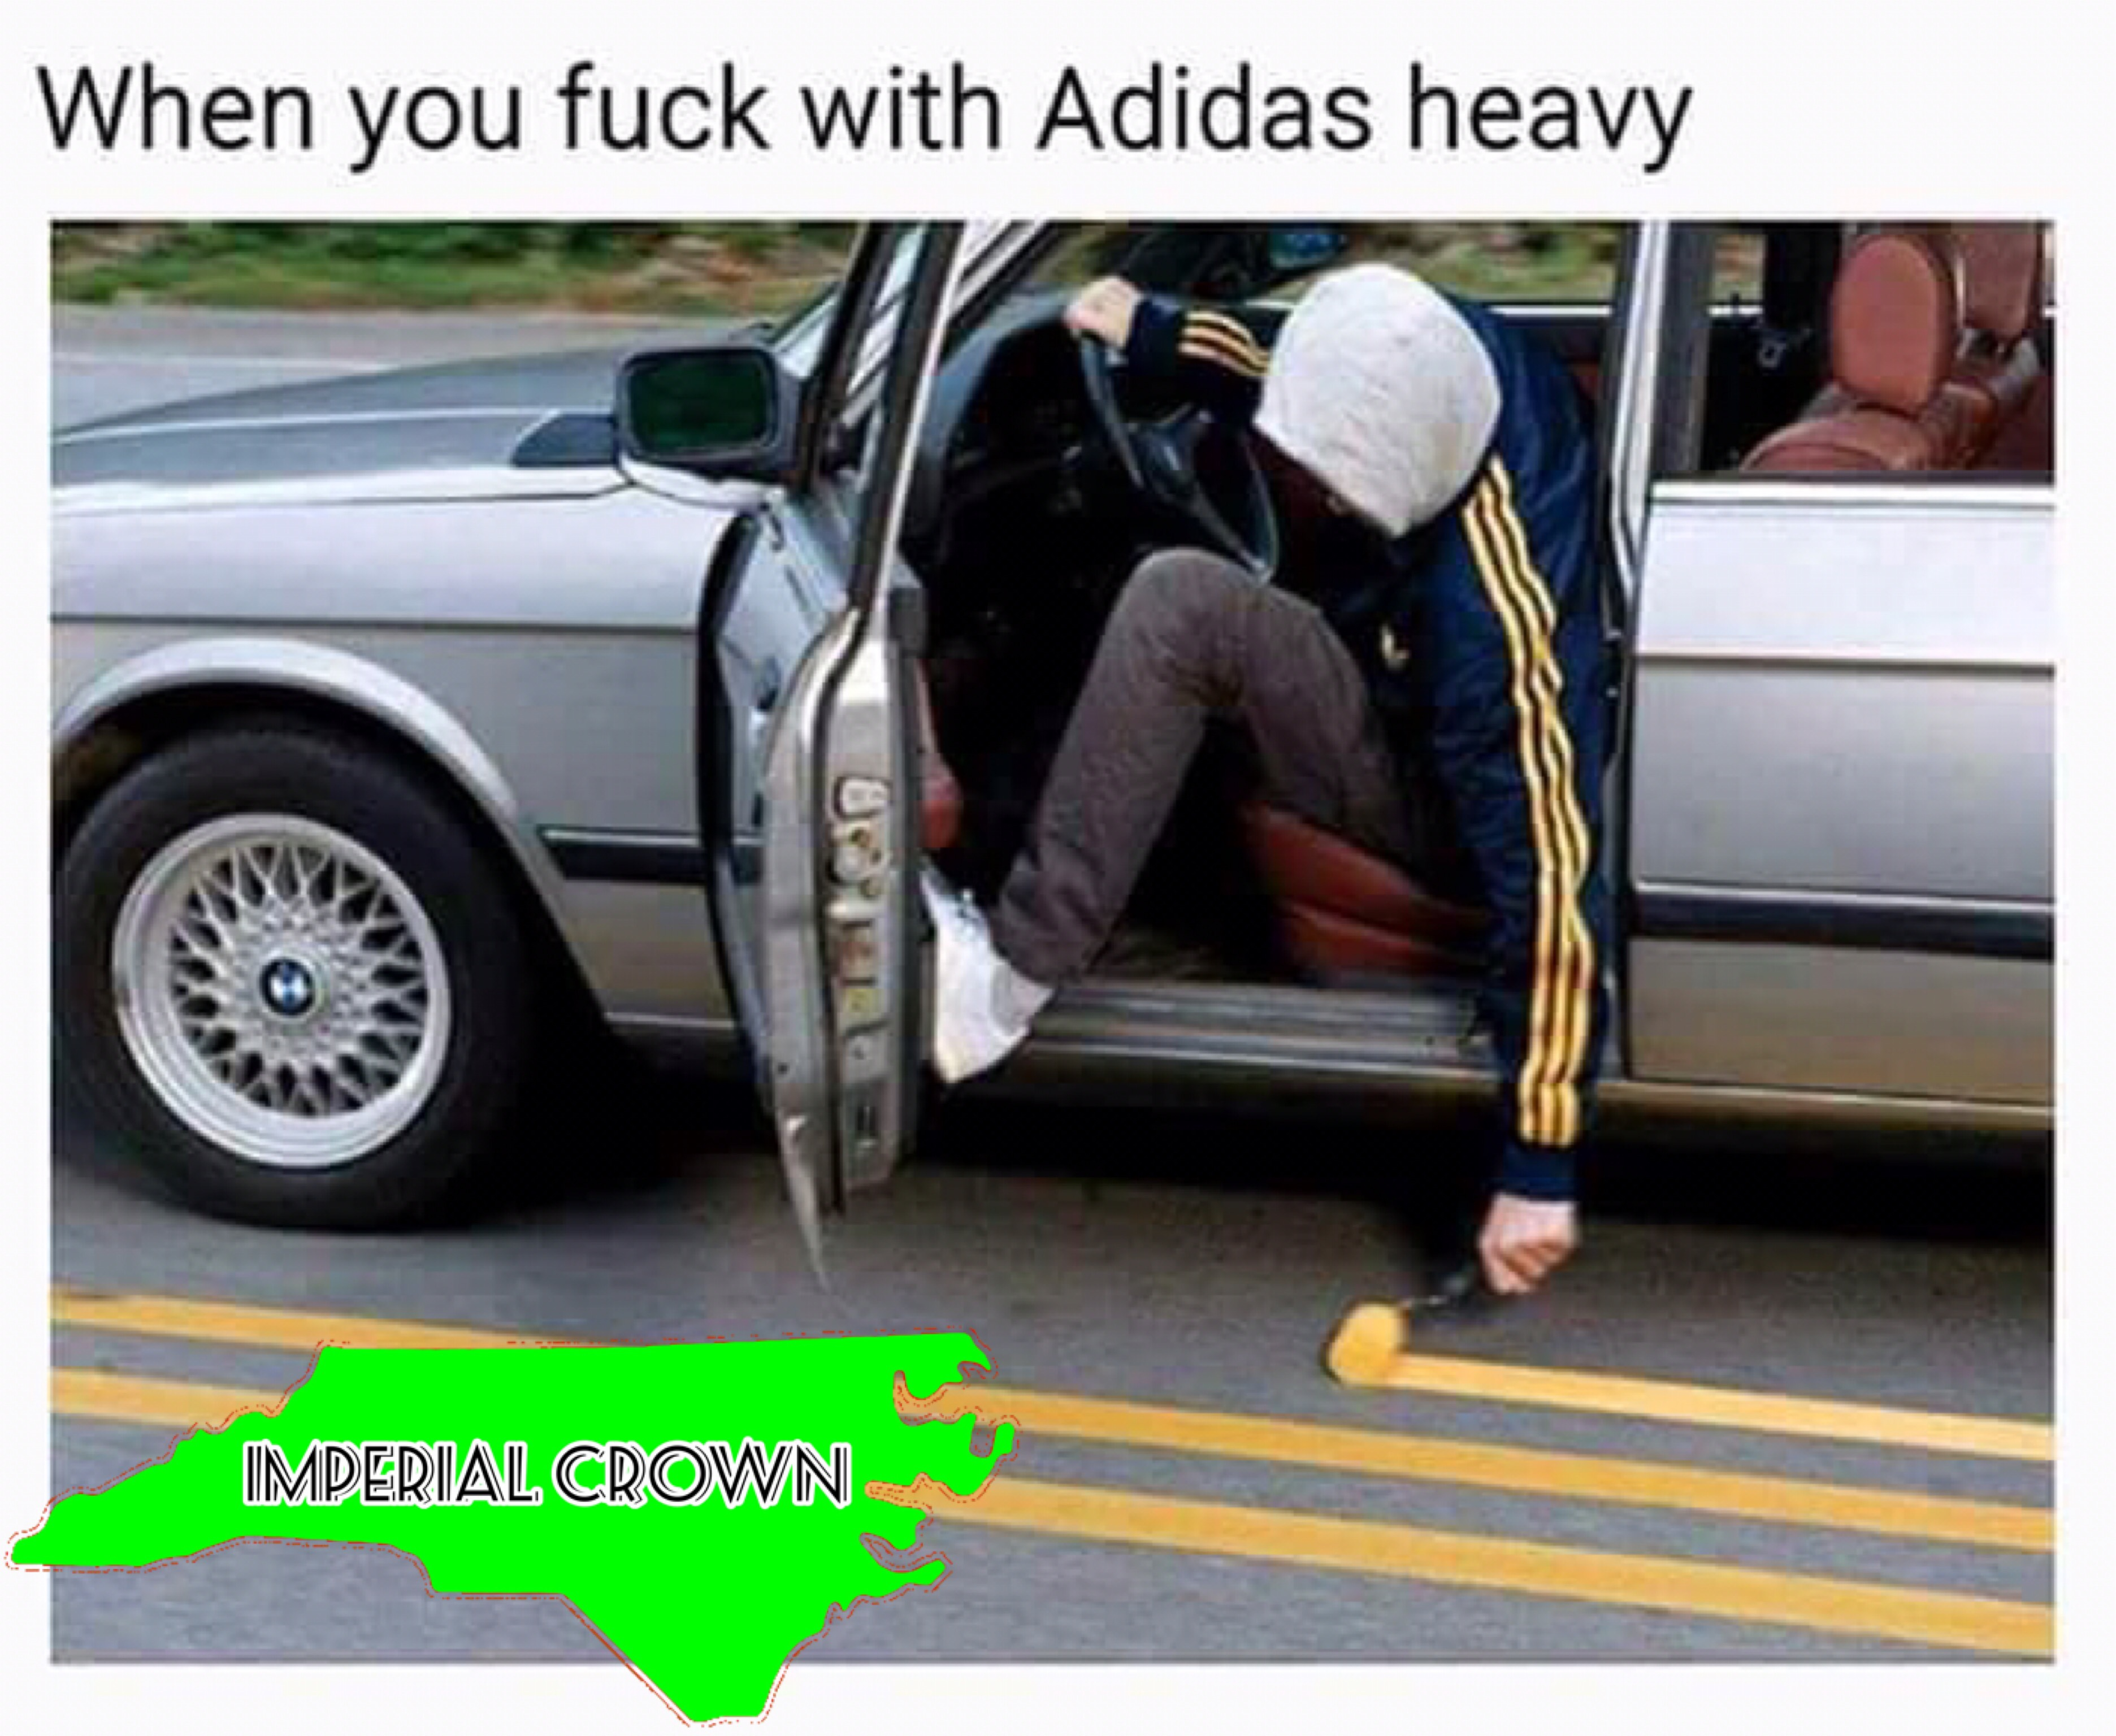 When you fuck with adidas heavy……